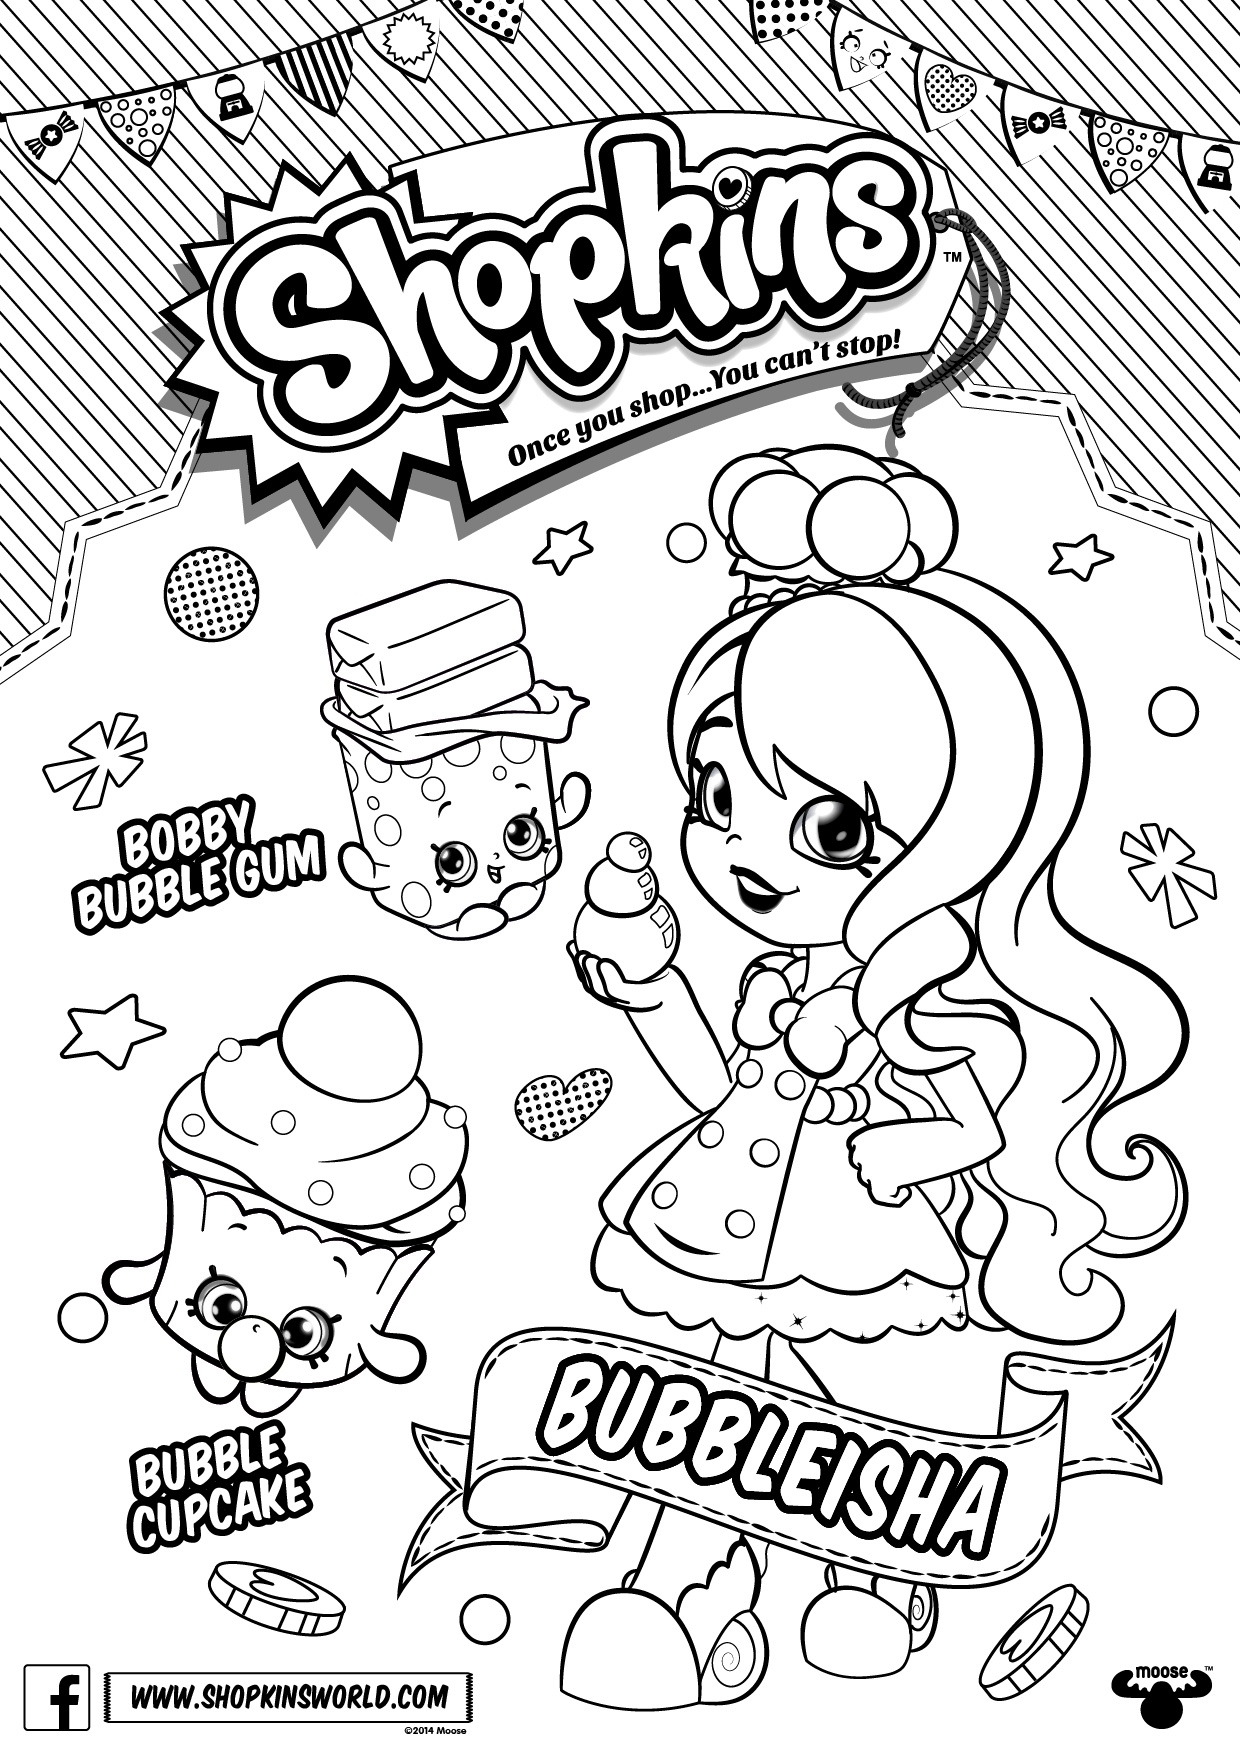 Shoppies Coloring Pages Shoppie Dolls Coloring Pages At Getdrawings